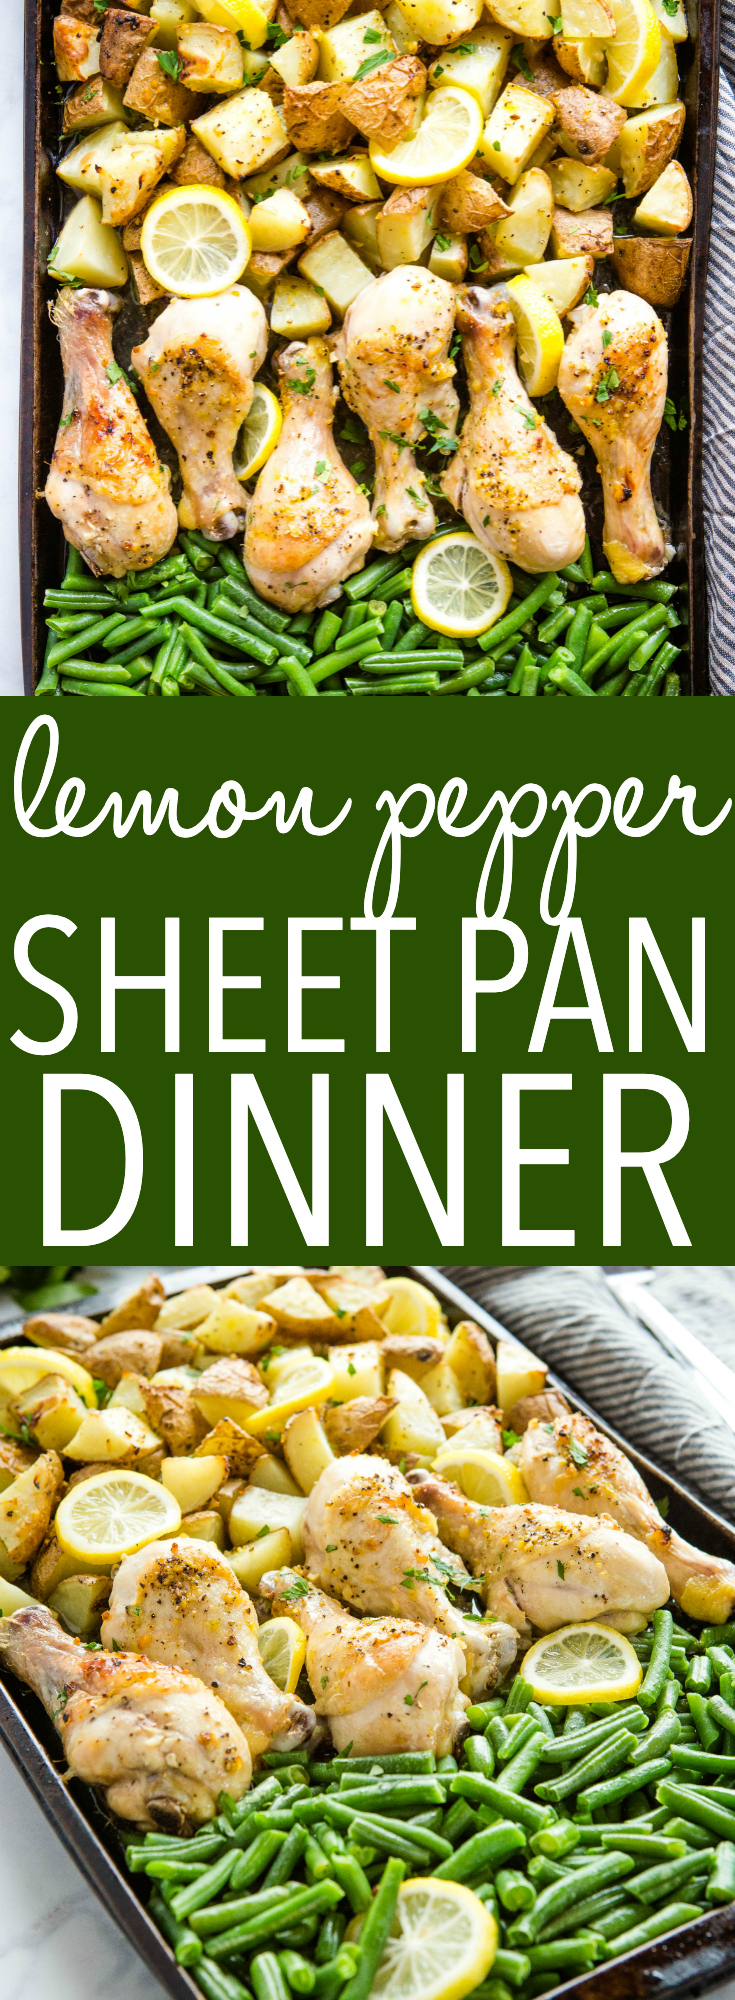 This Easy Lemon Pepper Sheet Pan Dinner is the perfect weeknight meal idea for busy families made all on one pan - juicy chicken, tender potatoes and green beans, bursting with lemon pepper flavour!Recipe from thebusybaker.ca! #chicken #lemonpepper #greenbeans #potatoes #sheetpandinner #onepot #weeknightmeal #easydinner #familymeal via @busybakerblog